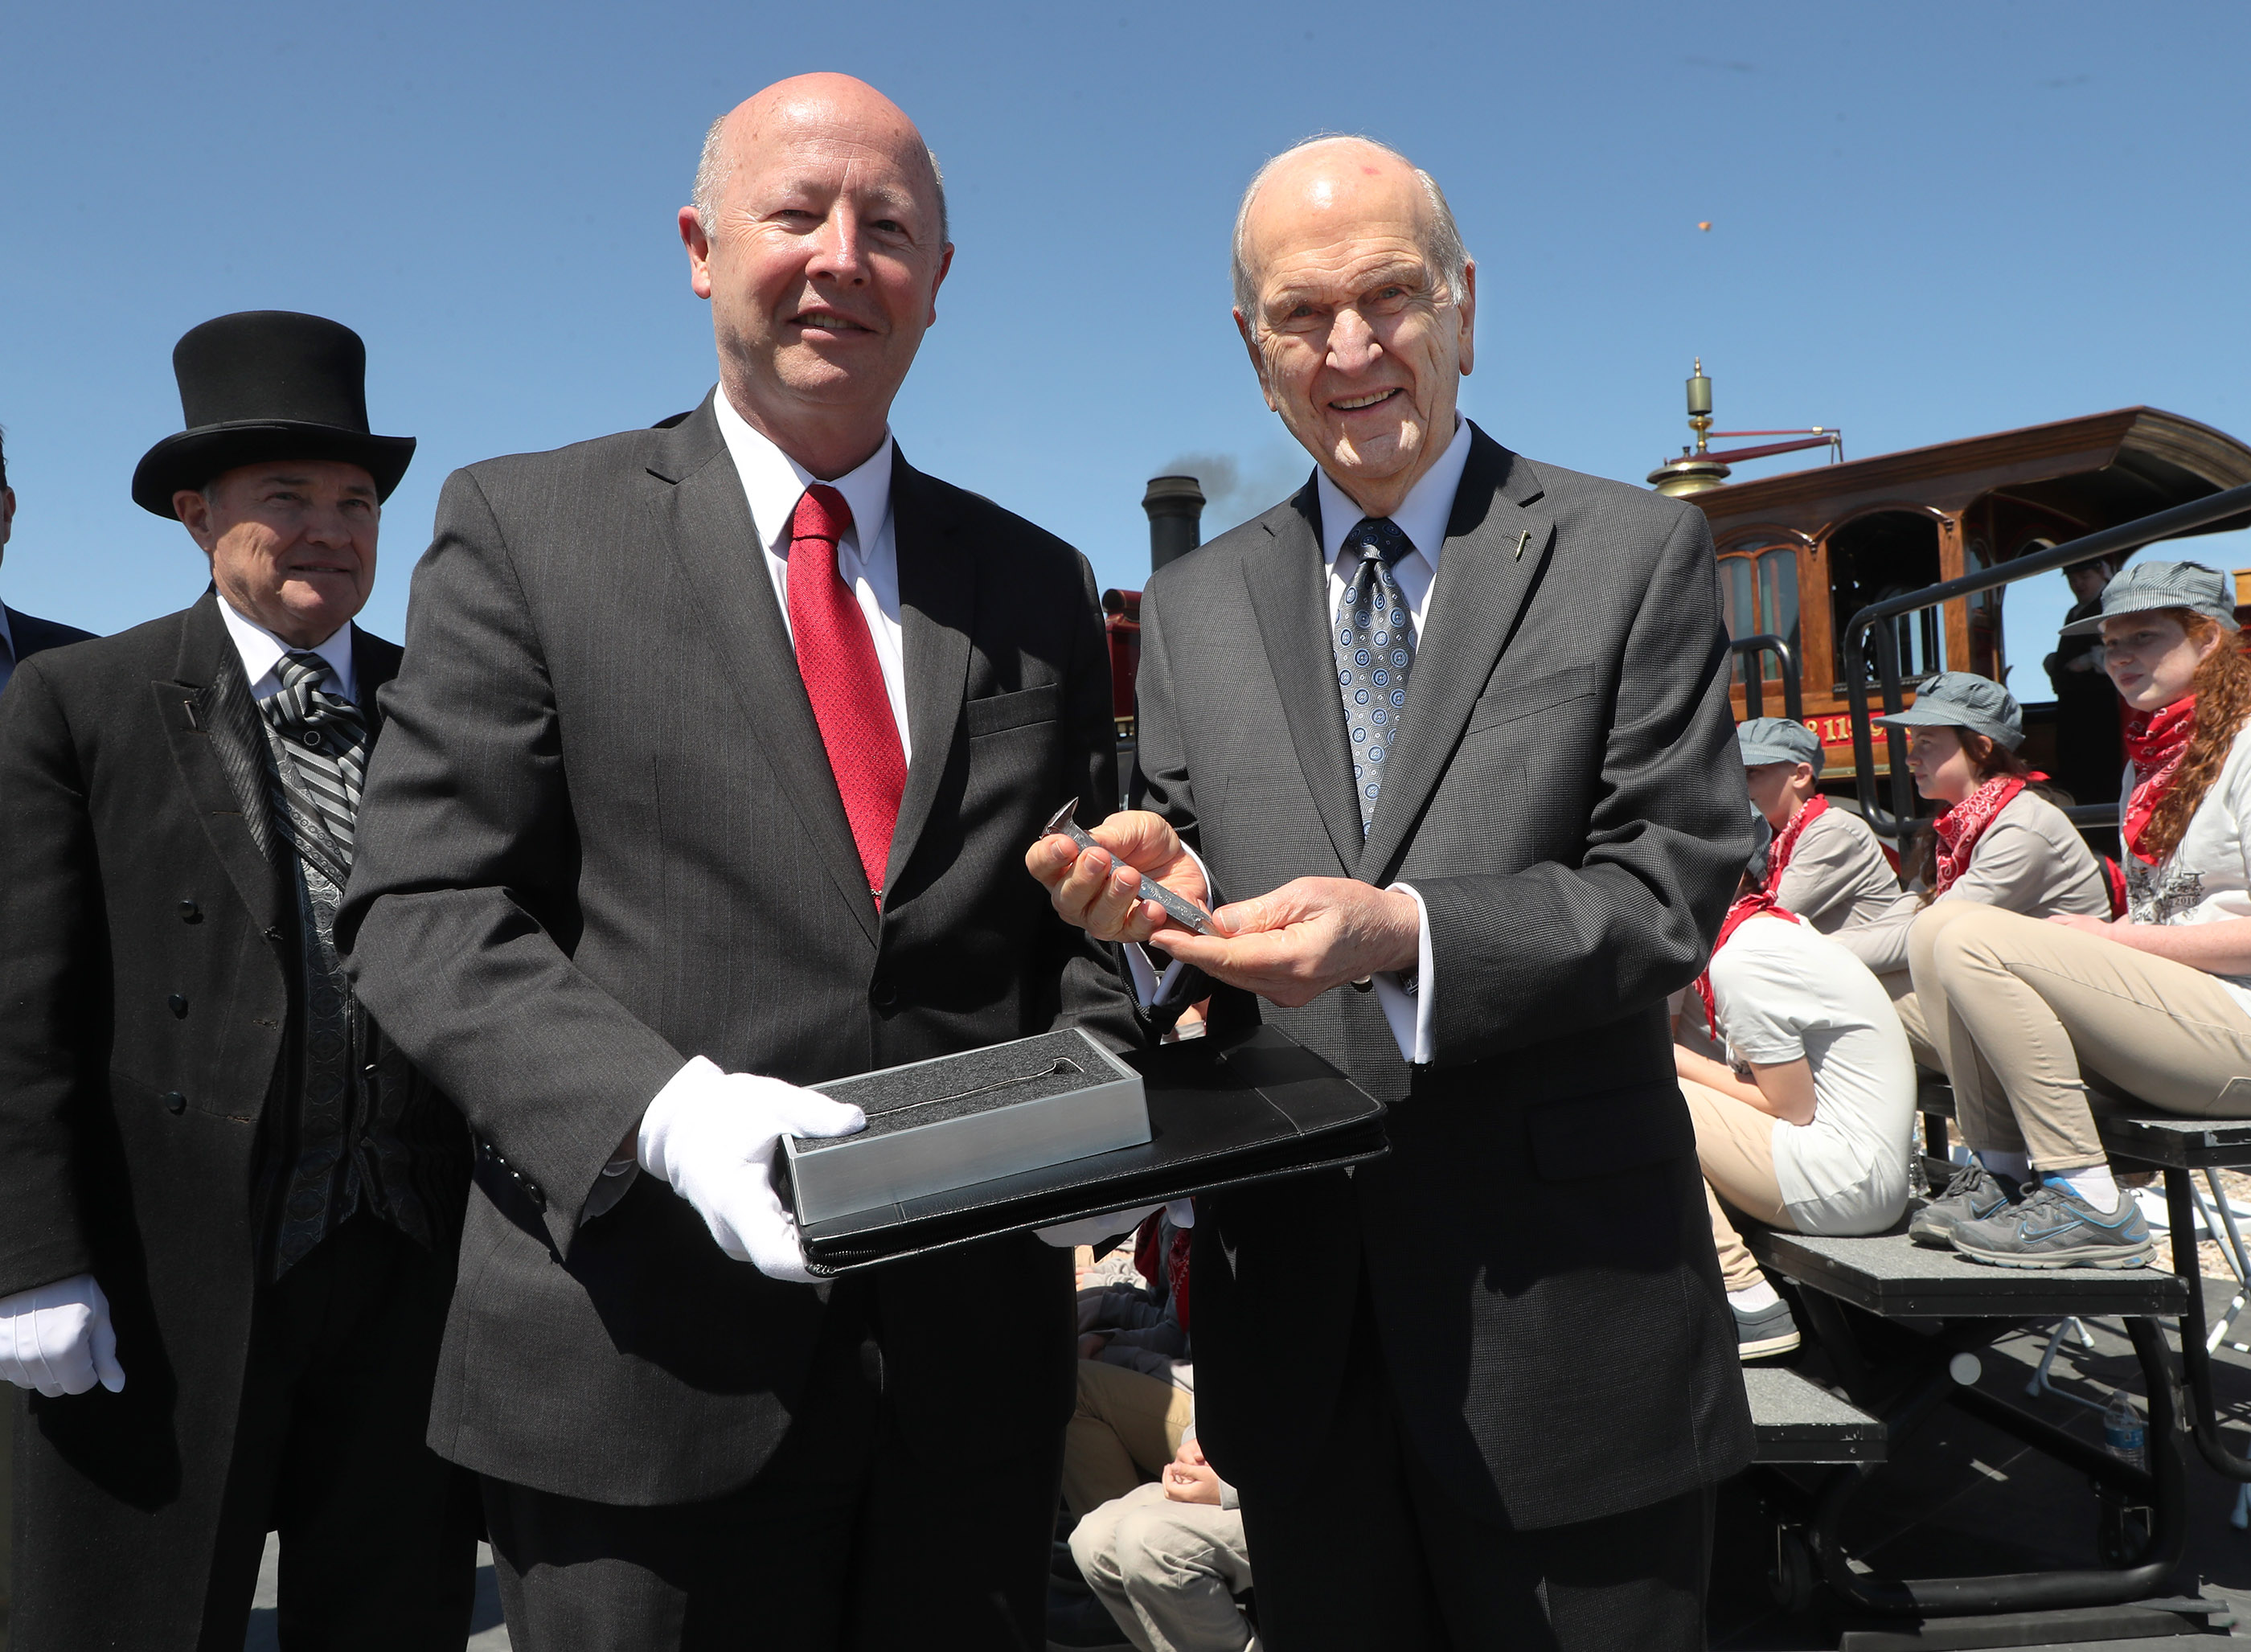 President Russell M. Nelson of The Church of Jesus Christ of Latter-day Saints, right, and historian Rick Turley hold the historic Utah spike during the 150th anniversary celebration of the transcontinental railroad at the Golden Spike National Historical Park in Promontory Summit, Utah, on Friday, May 10, 2019.